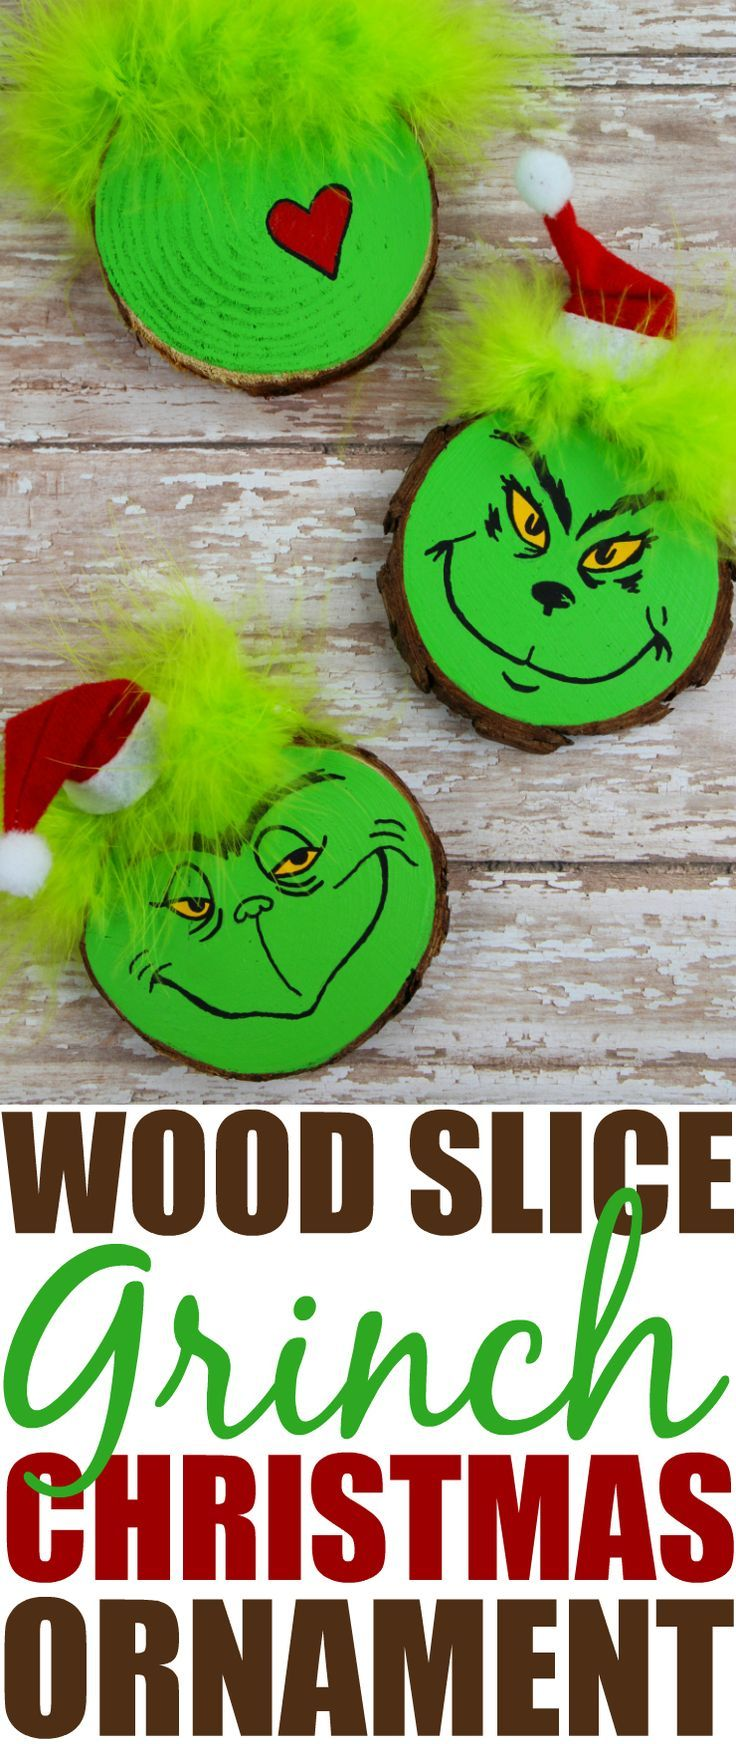 Wood Slice Grinch Christmas Tree Ornament Craft Recipe Grinch Christmas Tree Christmas Tree Ornament Crafts Grinch Christmas